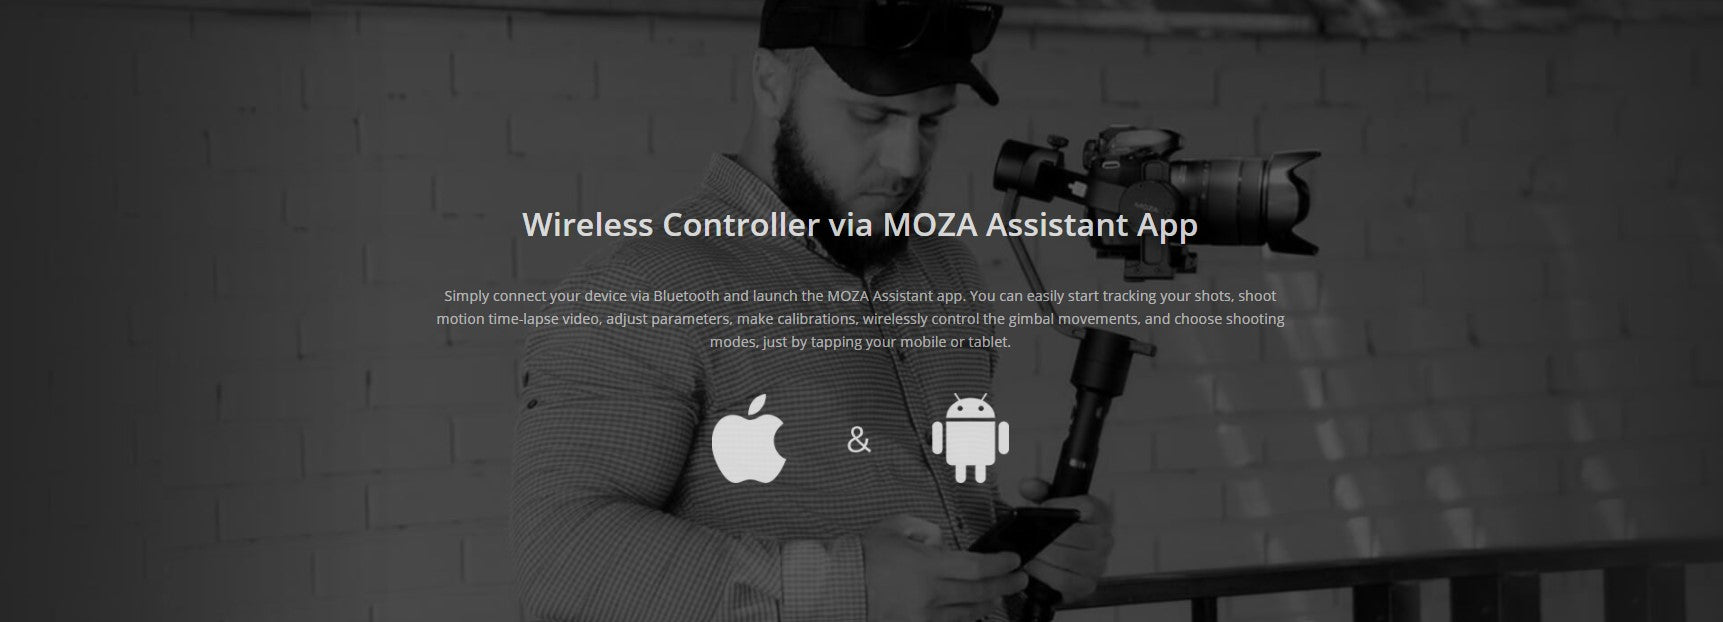 moza-air-wireless-phone-charging-gimbal-phone-camera-stabilizer-wireless-charging-full-expansion-sport-gear-mode-zoom-control-focus-control-app-function-app